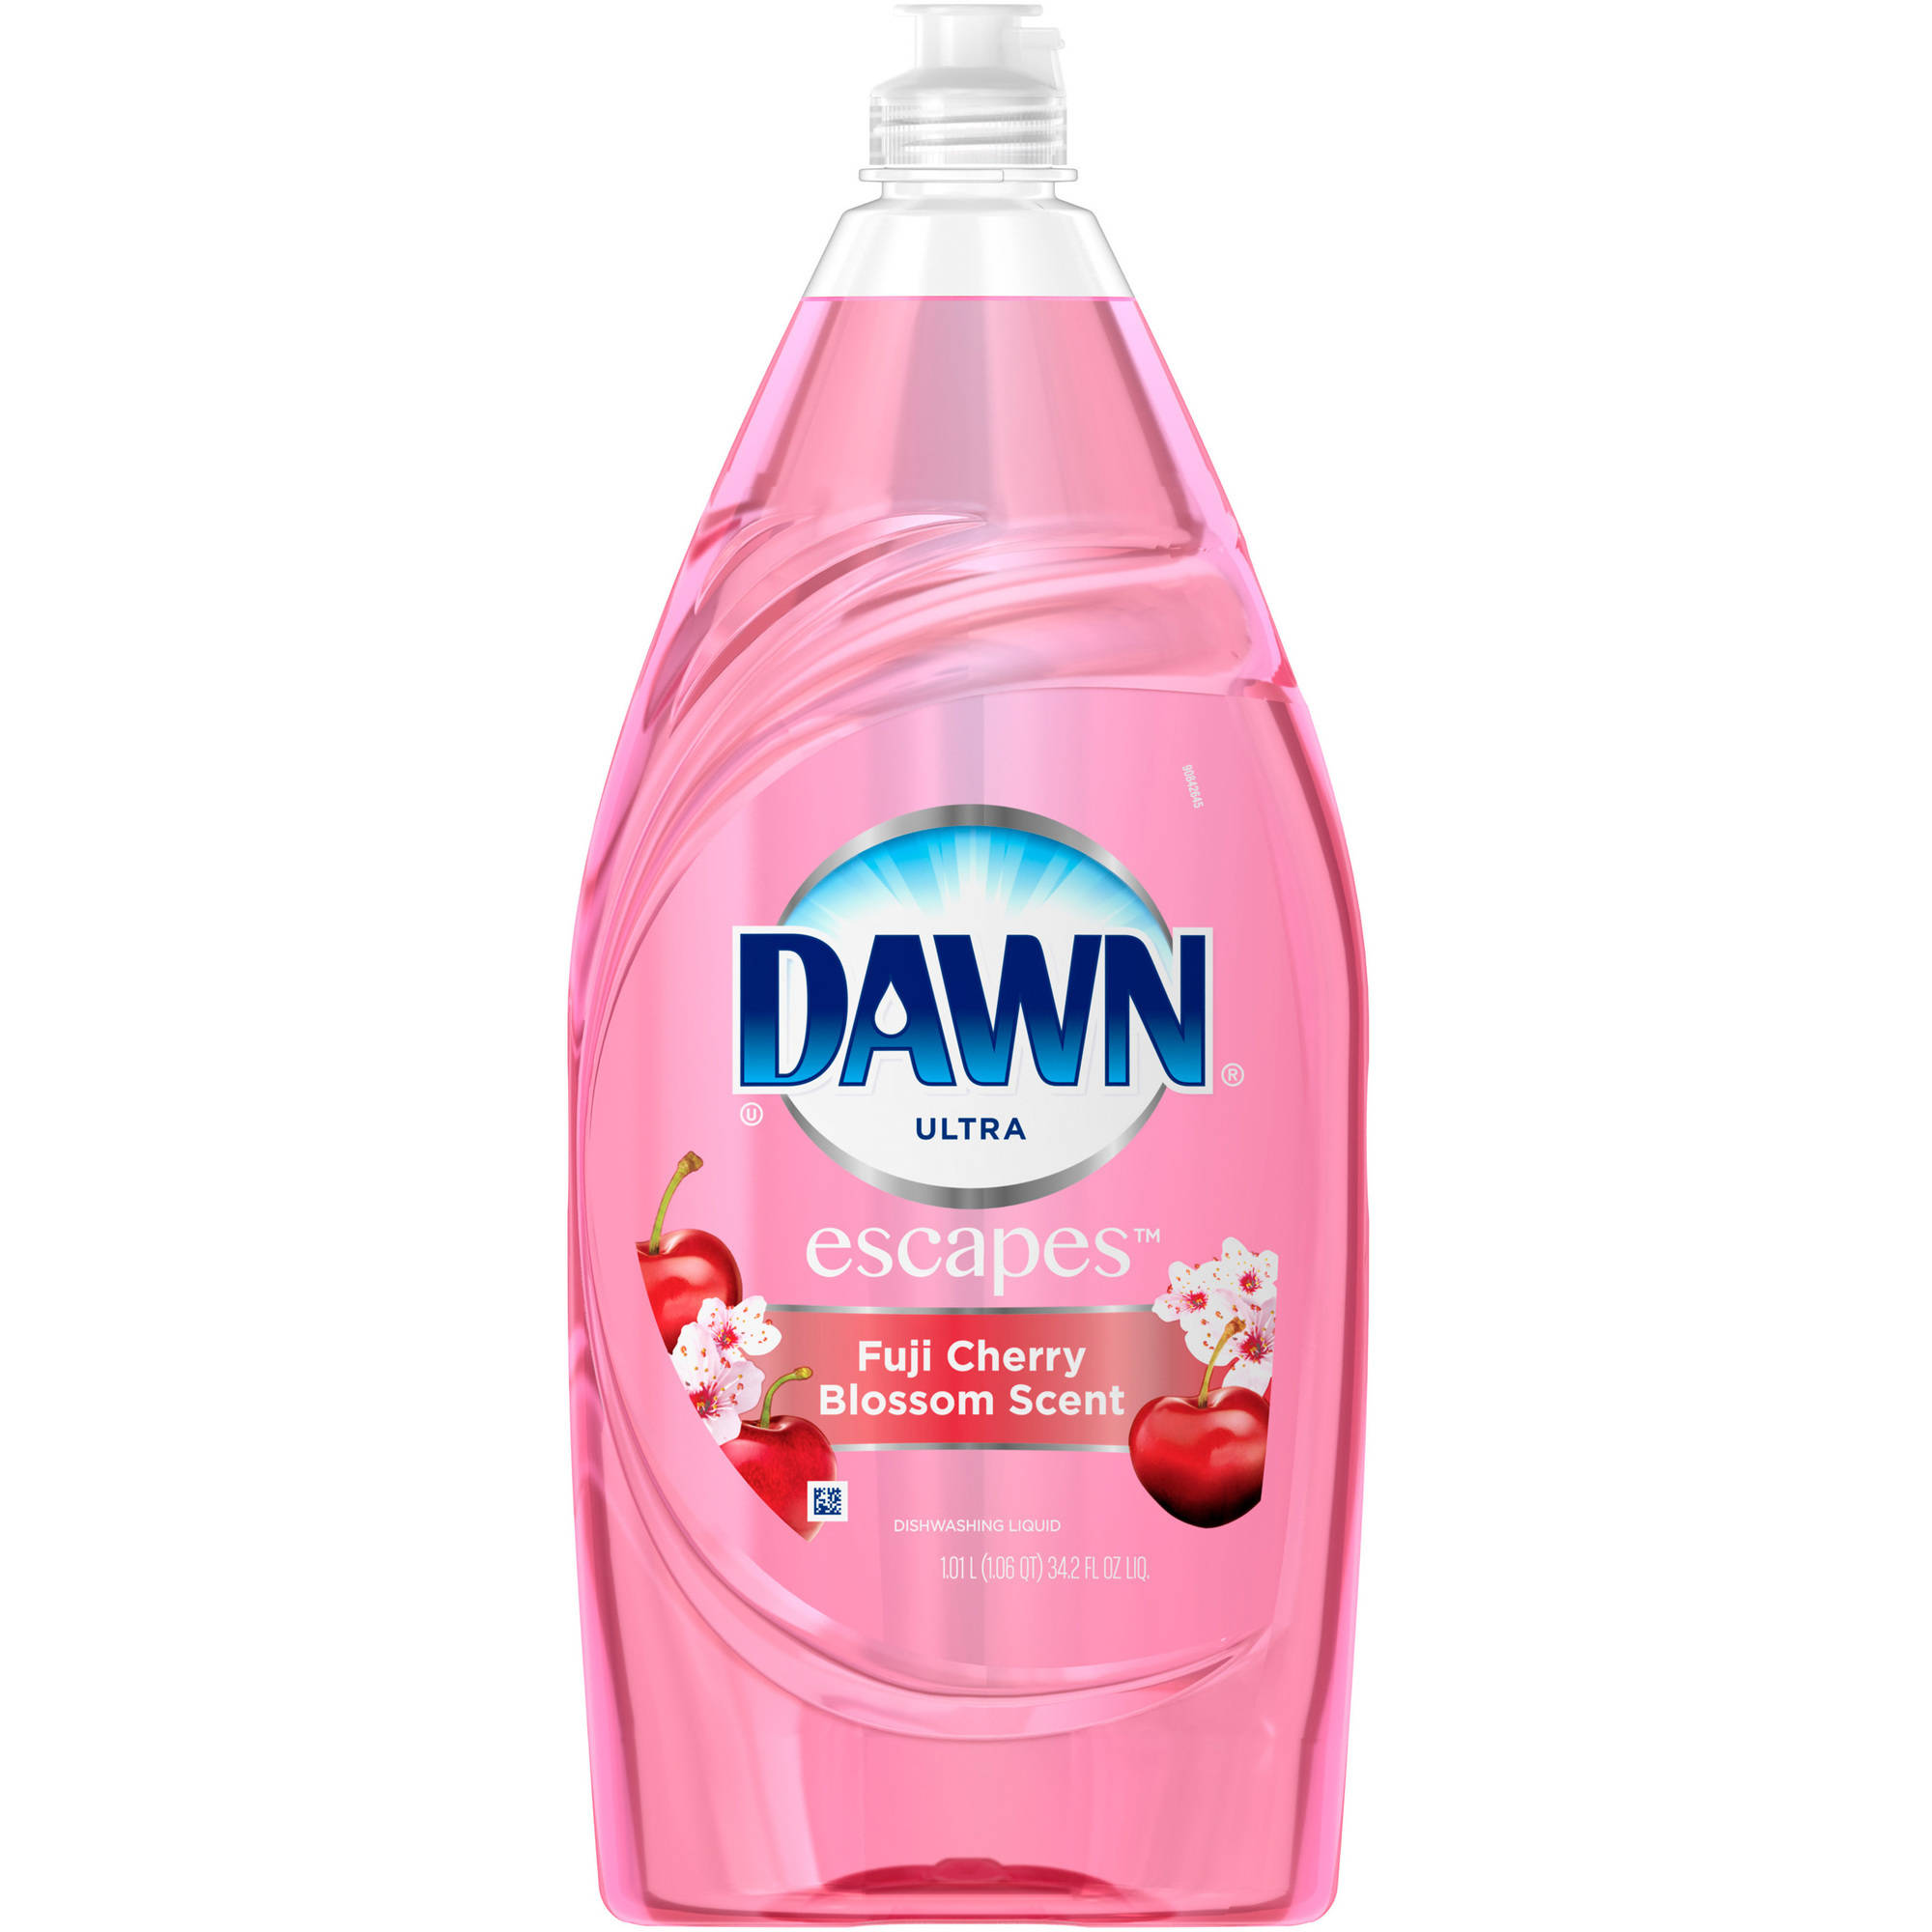 Dawn Ultra Fuji Cherry Blossom Dishwashing Liquid, 38 fl oz